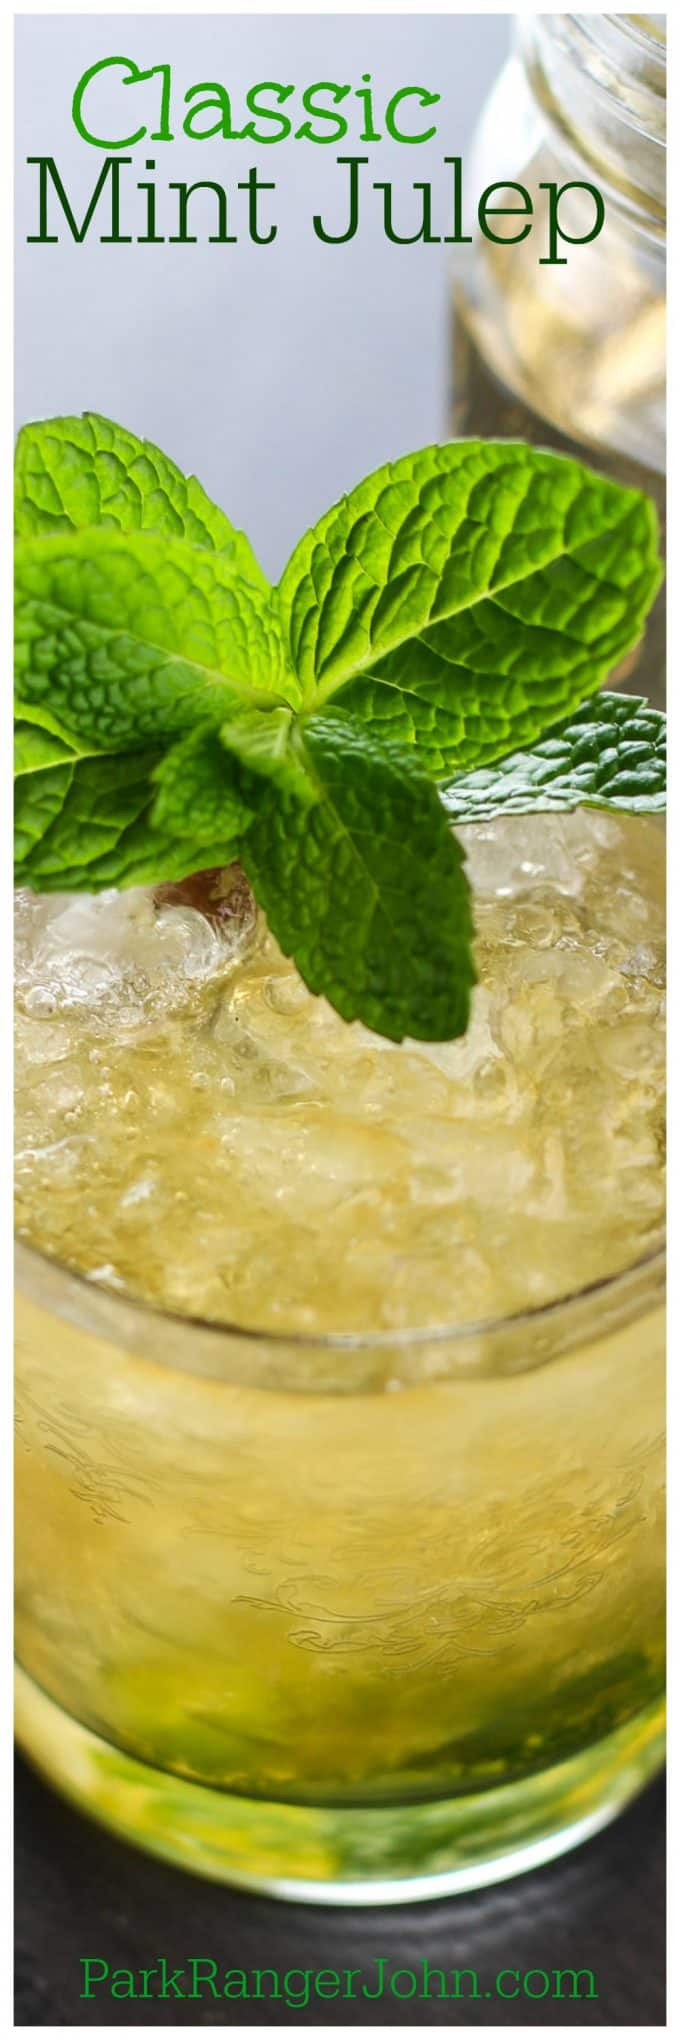 How to make the Best Easy Classic Mint Julep Cocktail Recipe perfect for the Kentucky Derby or any spring/summer day.